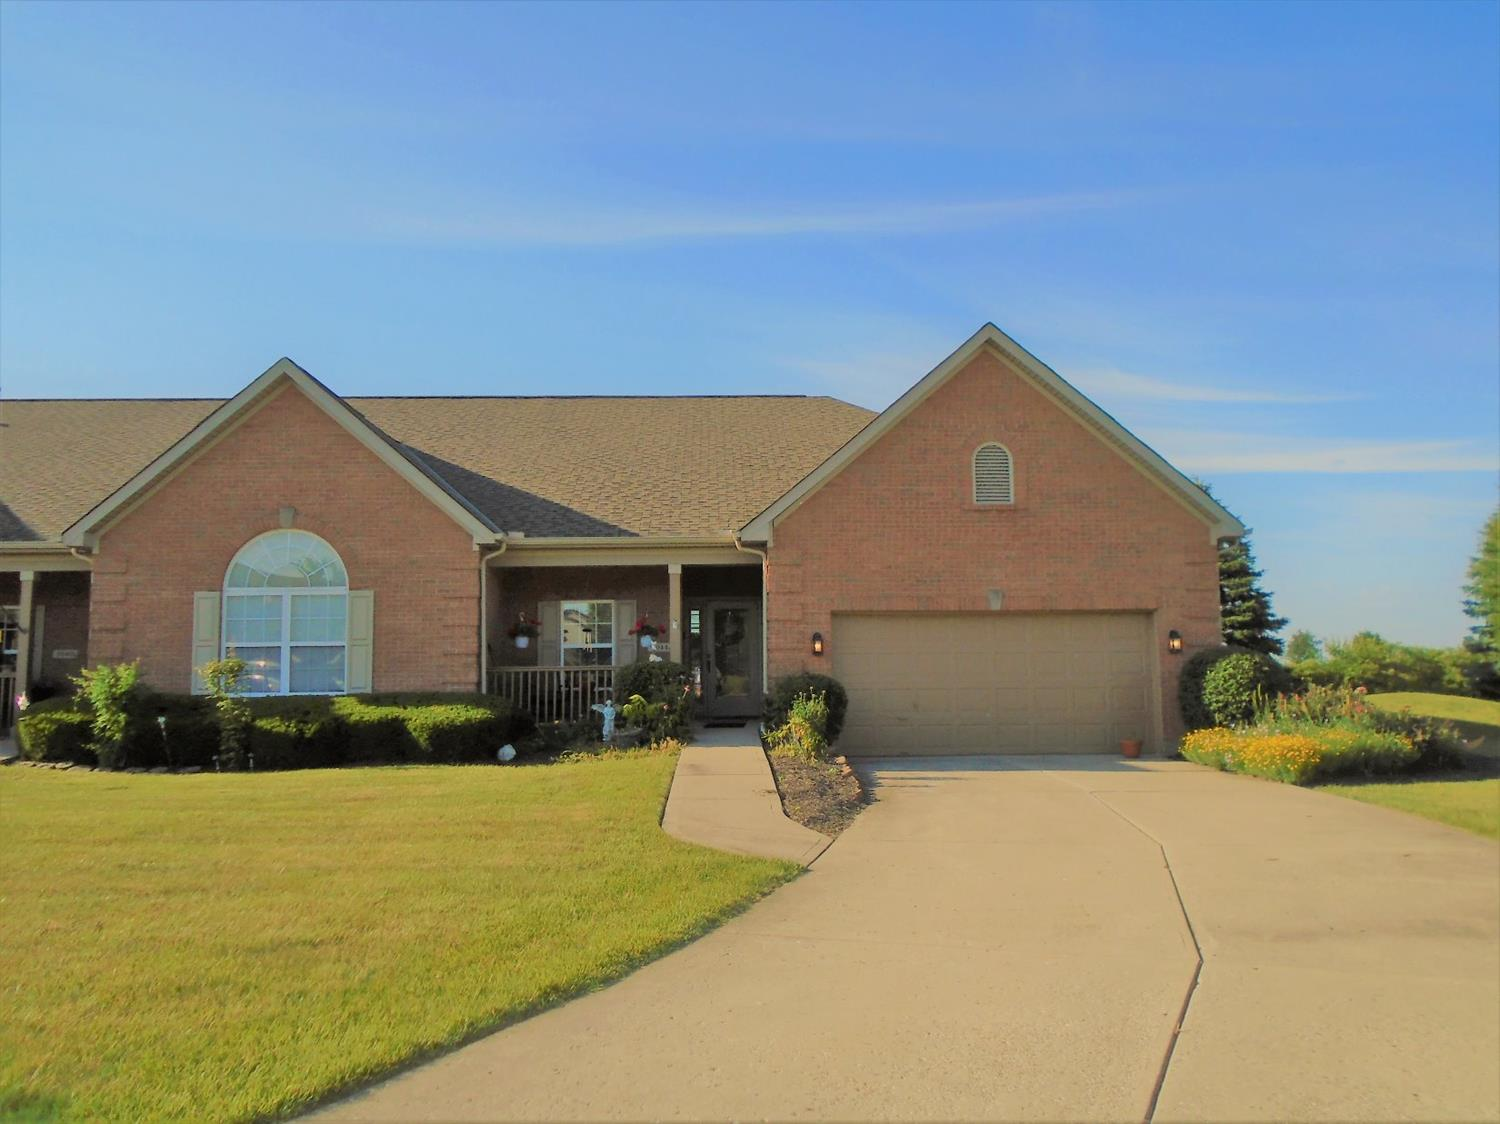 Property for sale at 8044 Cast A Way, Mason,  Ohio 45040